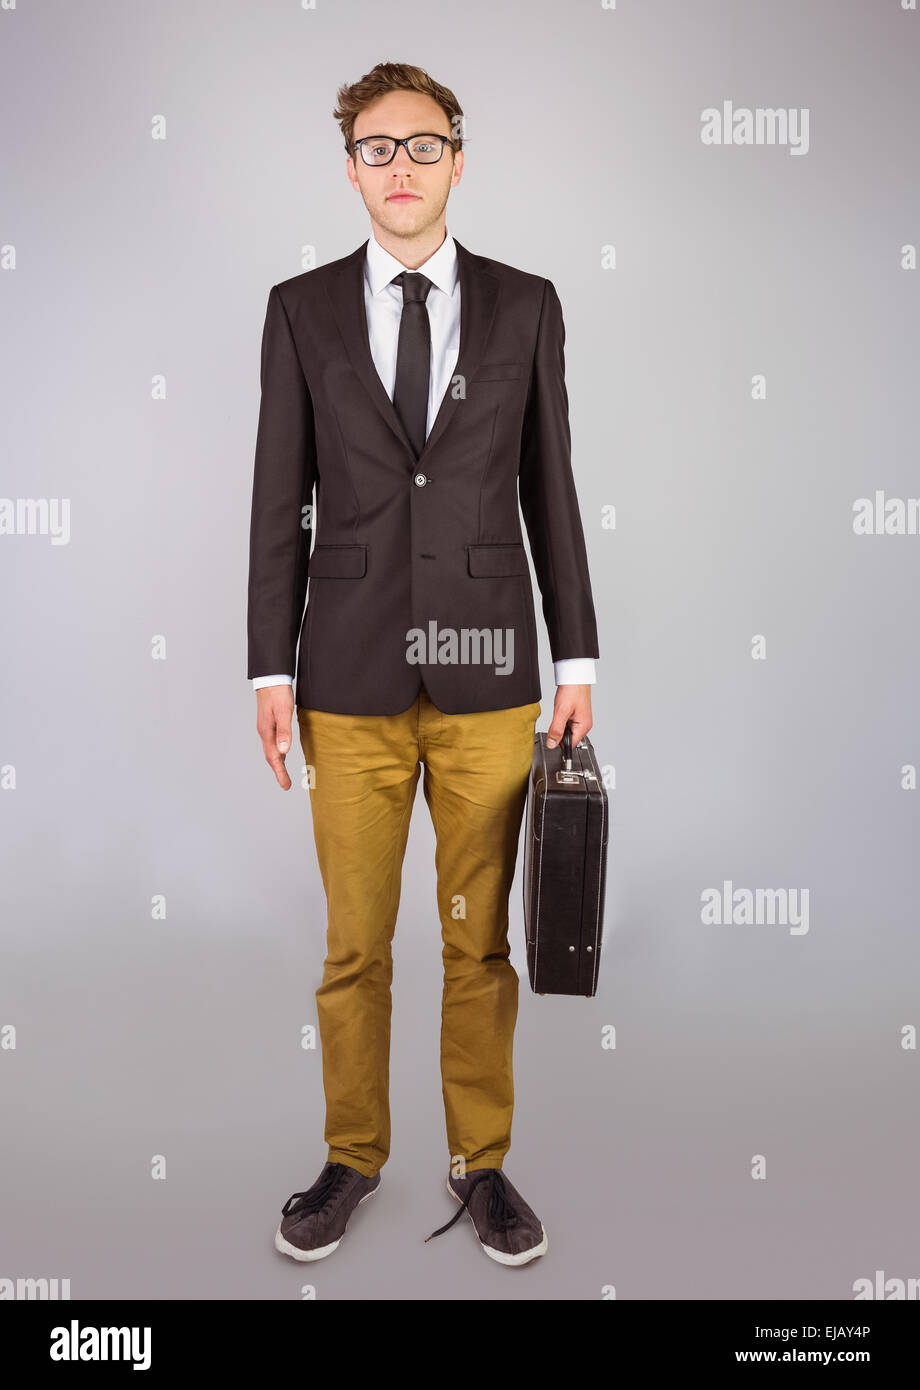 Young geeky businessman holding briefcase - Stock Image